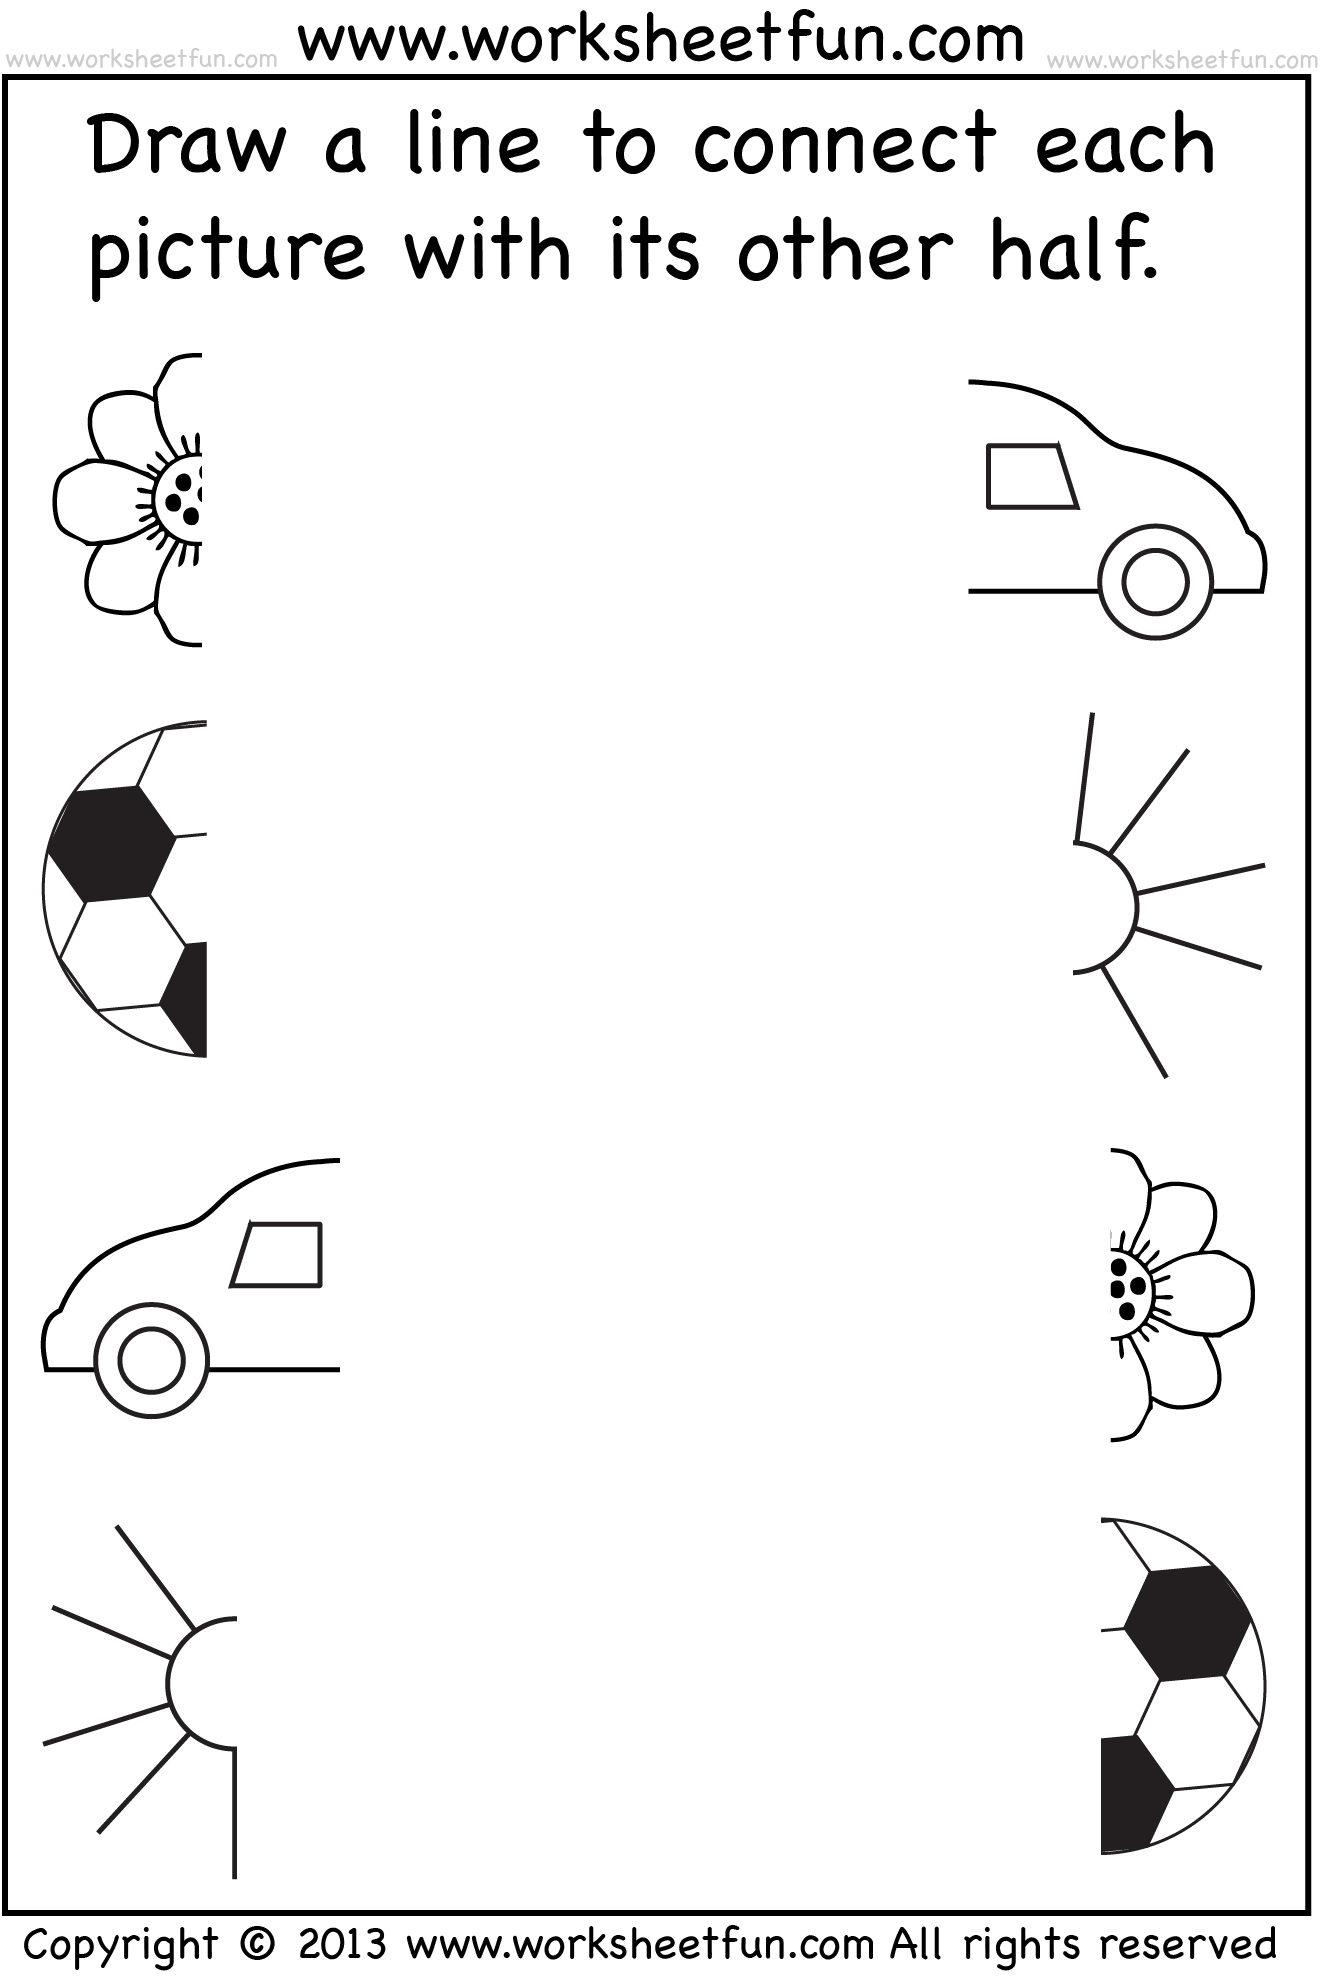 Preschool Worksheets - Connect Pictures - 5 Worksheets